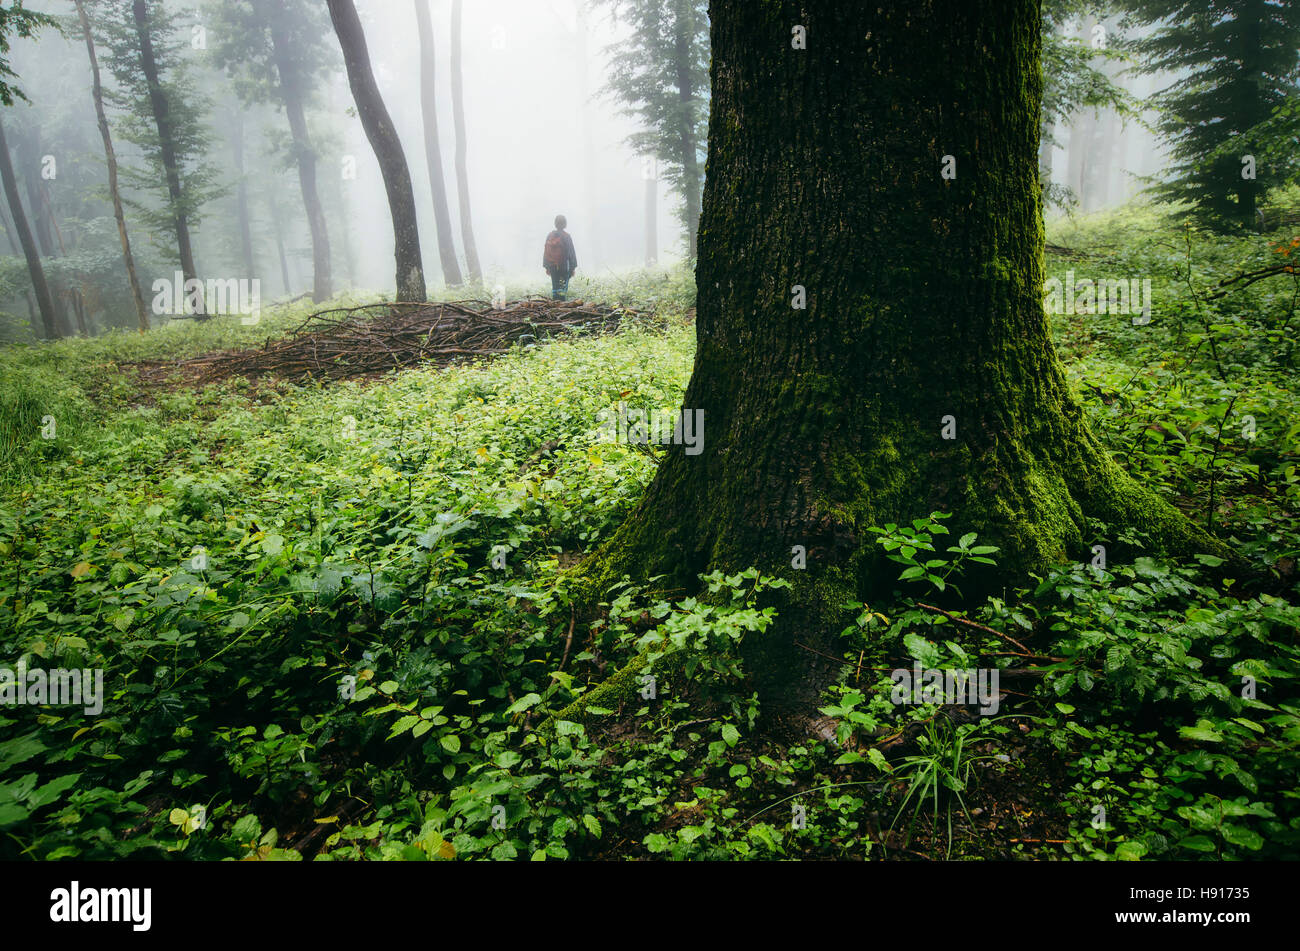 Natural green forest landscape. Man in nature in misty woods with lush vegetation on rainy day - Stock Image